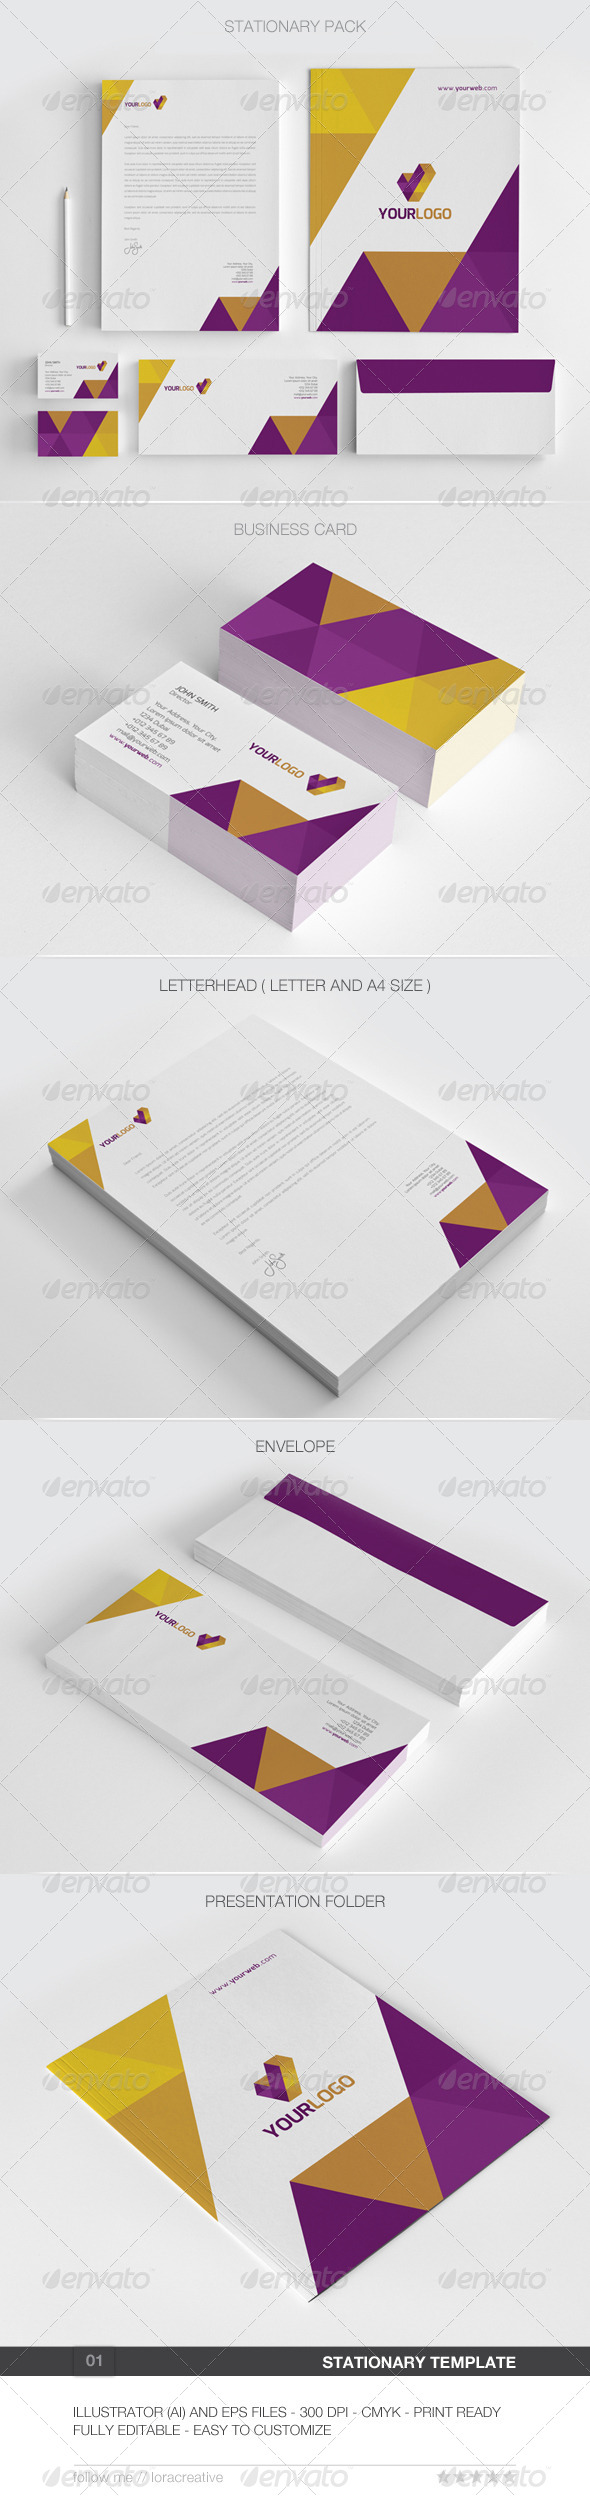 Modern Stationary Pack - 01 - Stationery Print Templates